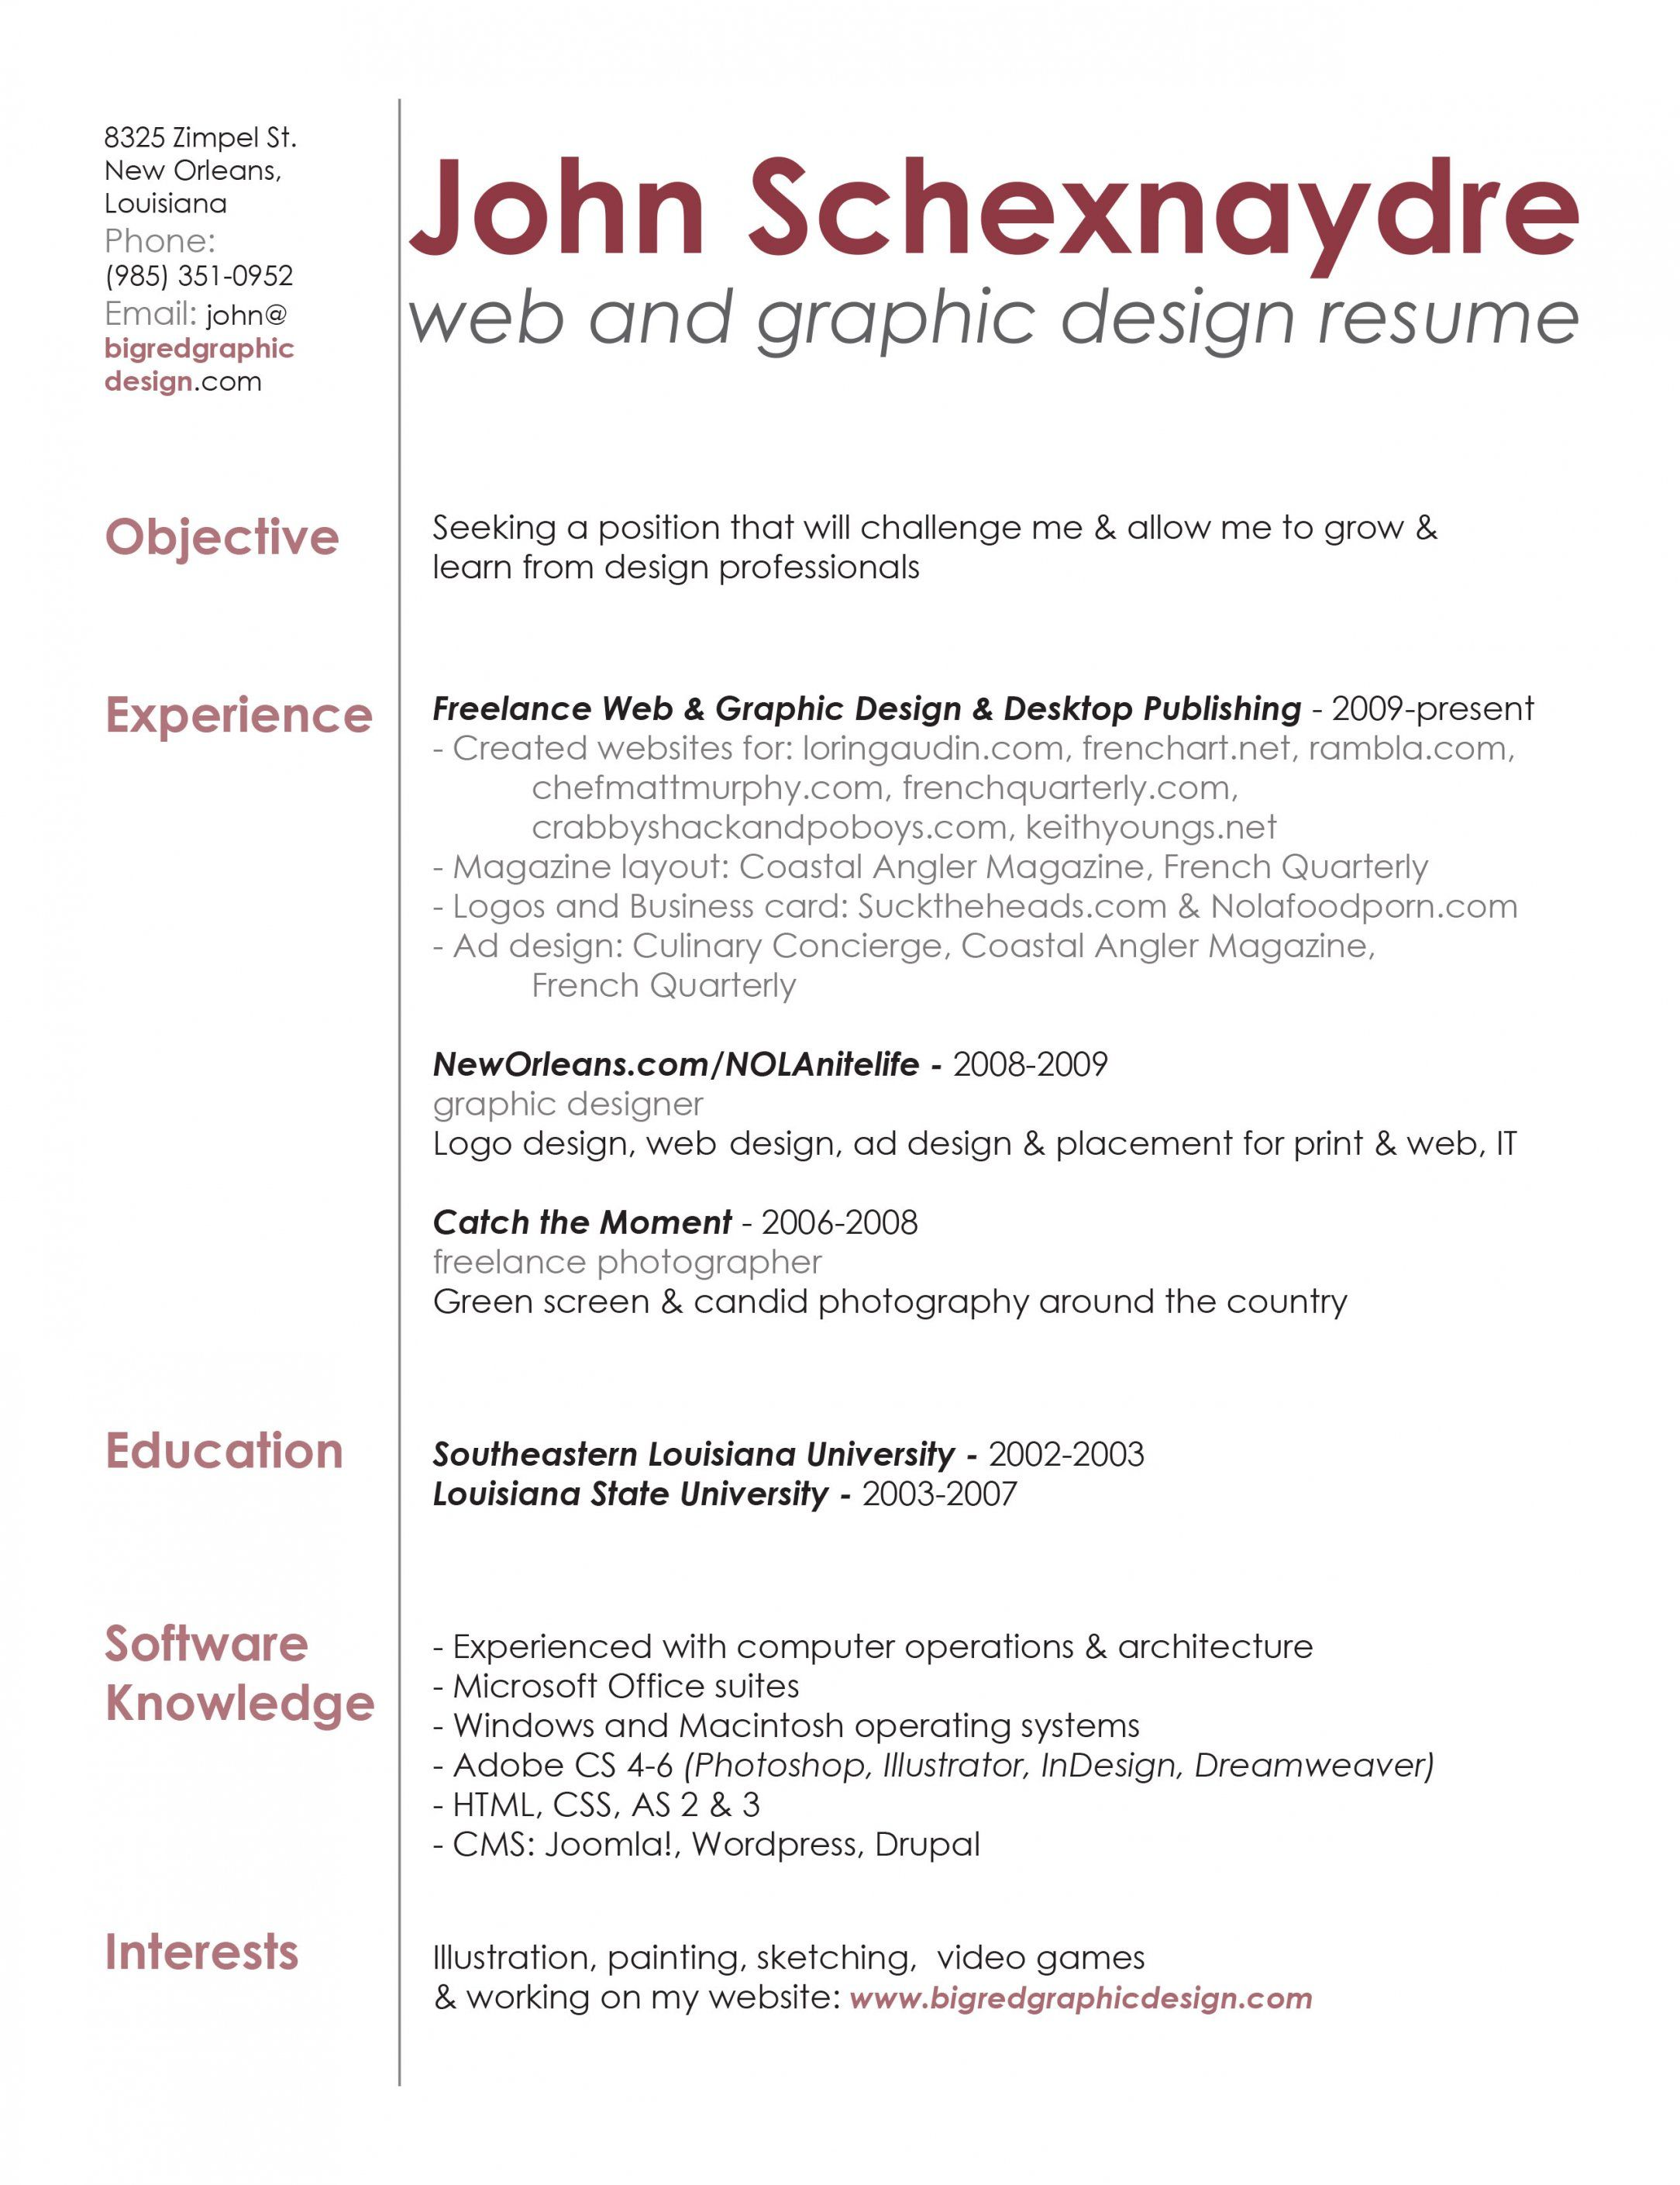 Contemporary Web Designing Resume For Fresher Vignette Graphic Design Resume Resume Design Freelance Graphic Design